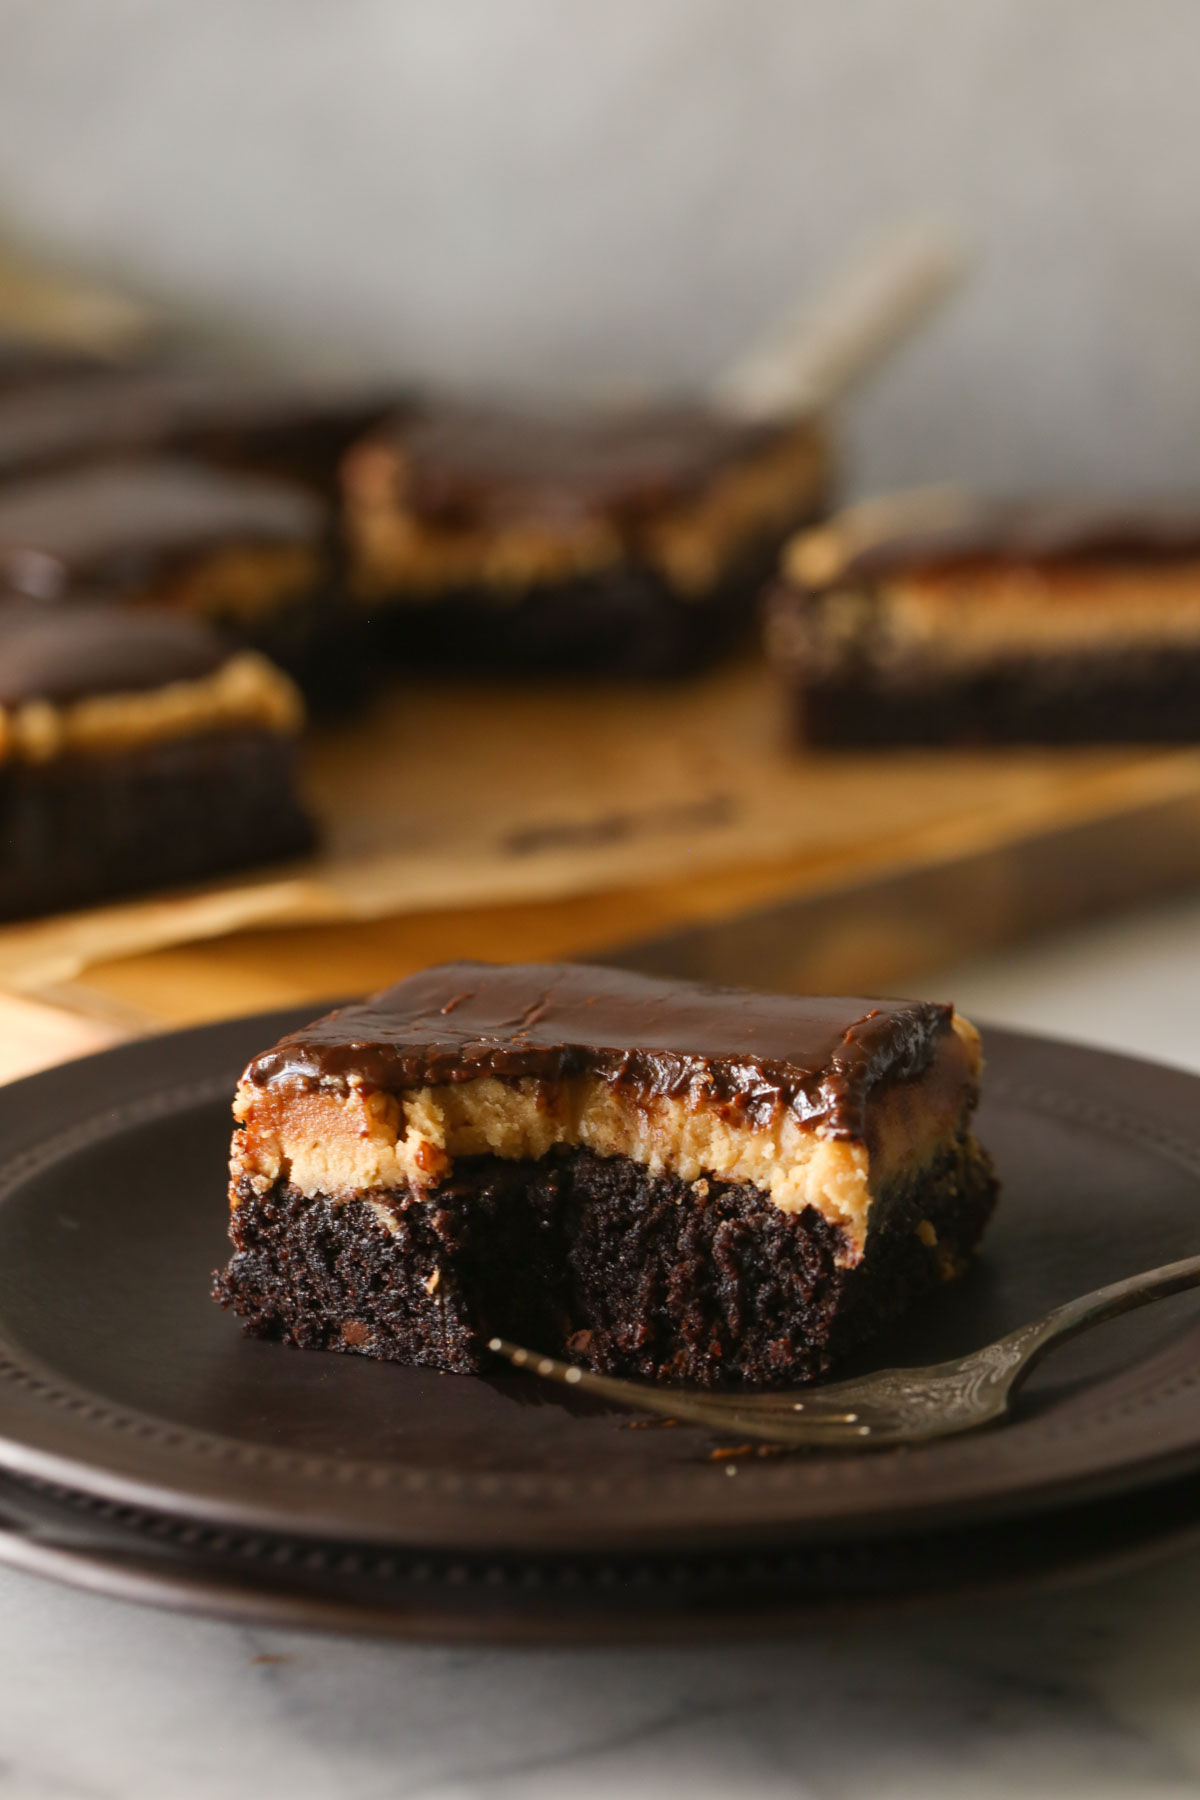 A Chocolate Peanut Butter Brownie on a plate with a fork, with more brownies in the background.